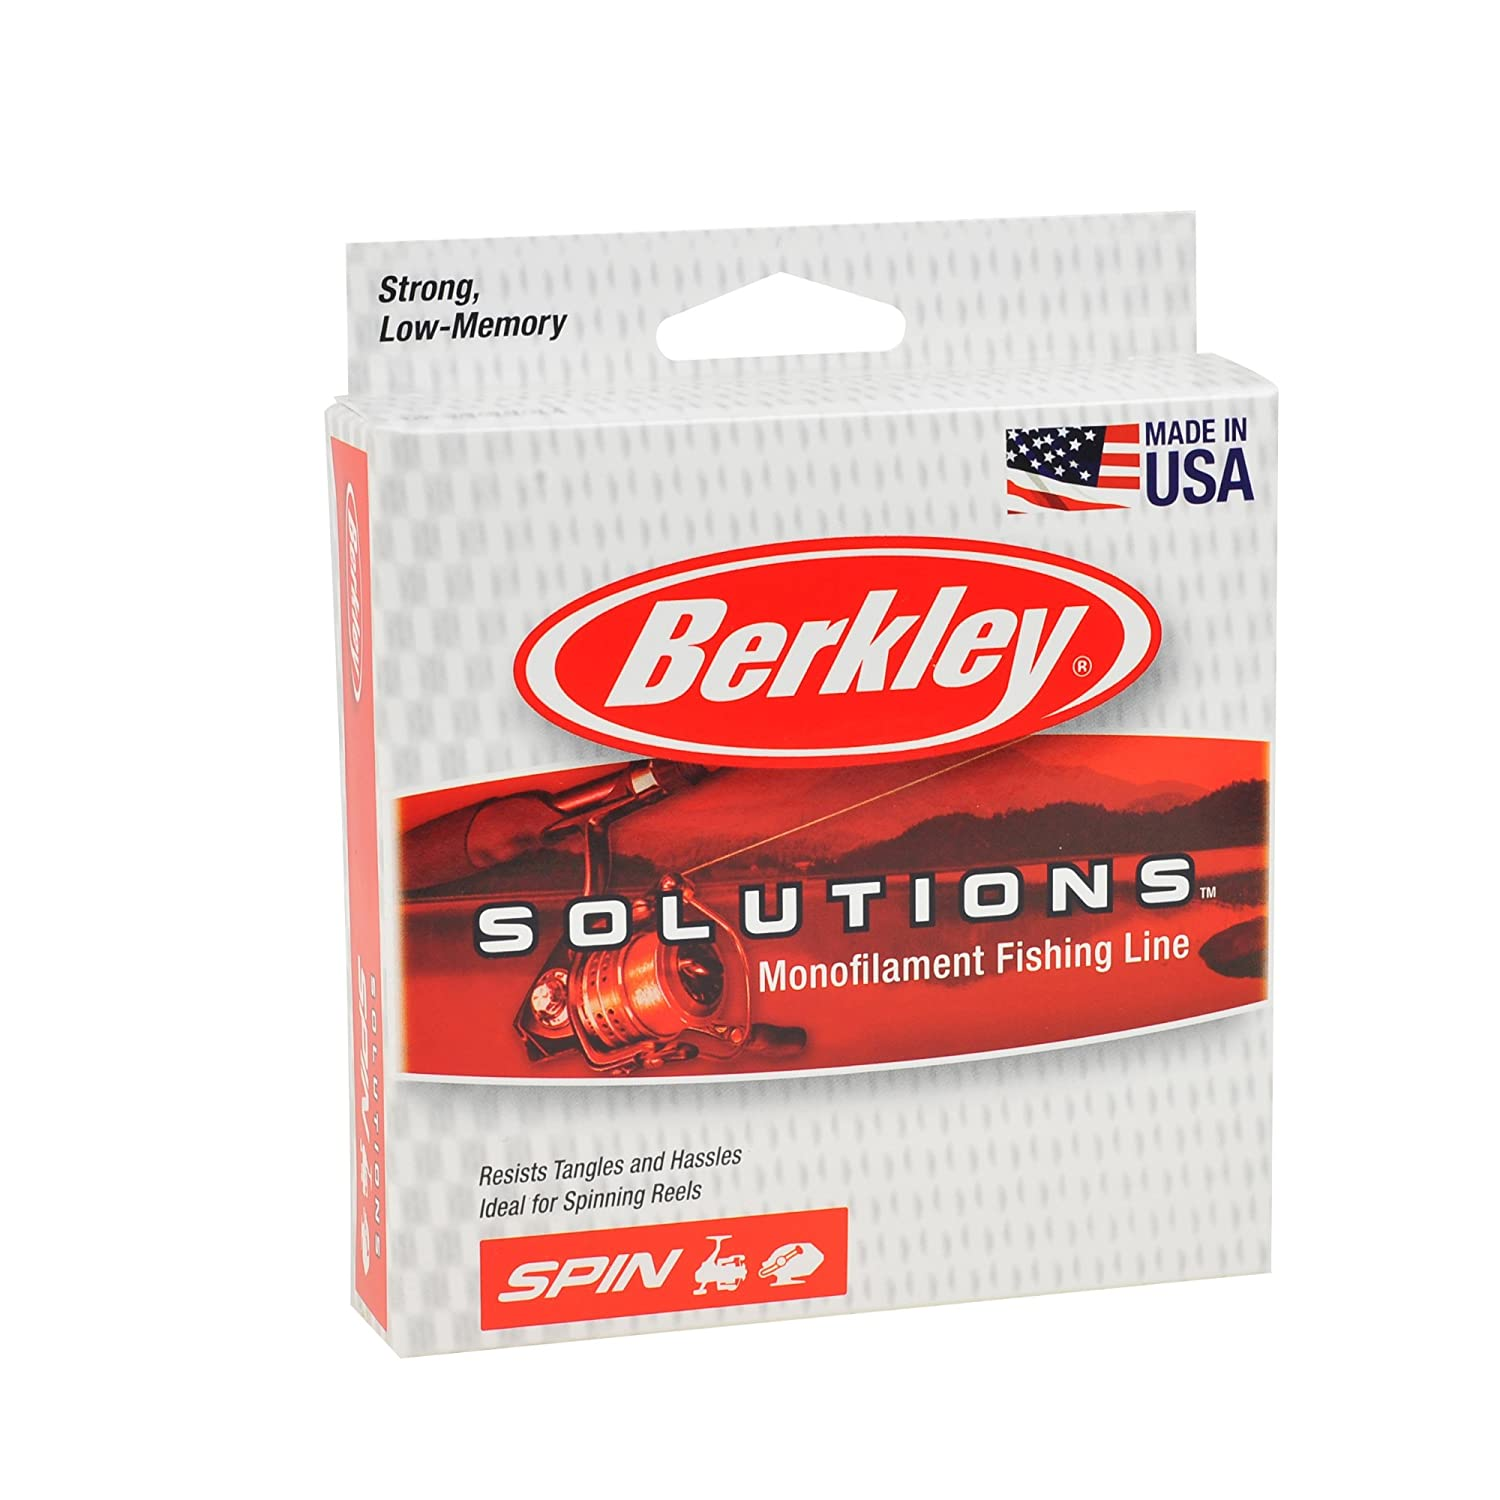 Amazon.com : Berkley Solutions Spinning Monofilament Fishing Line ...